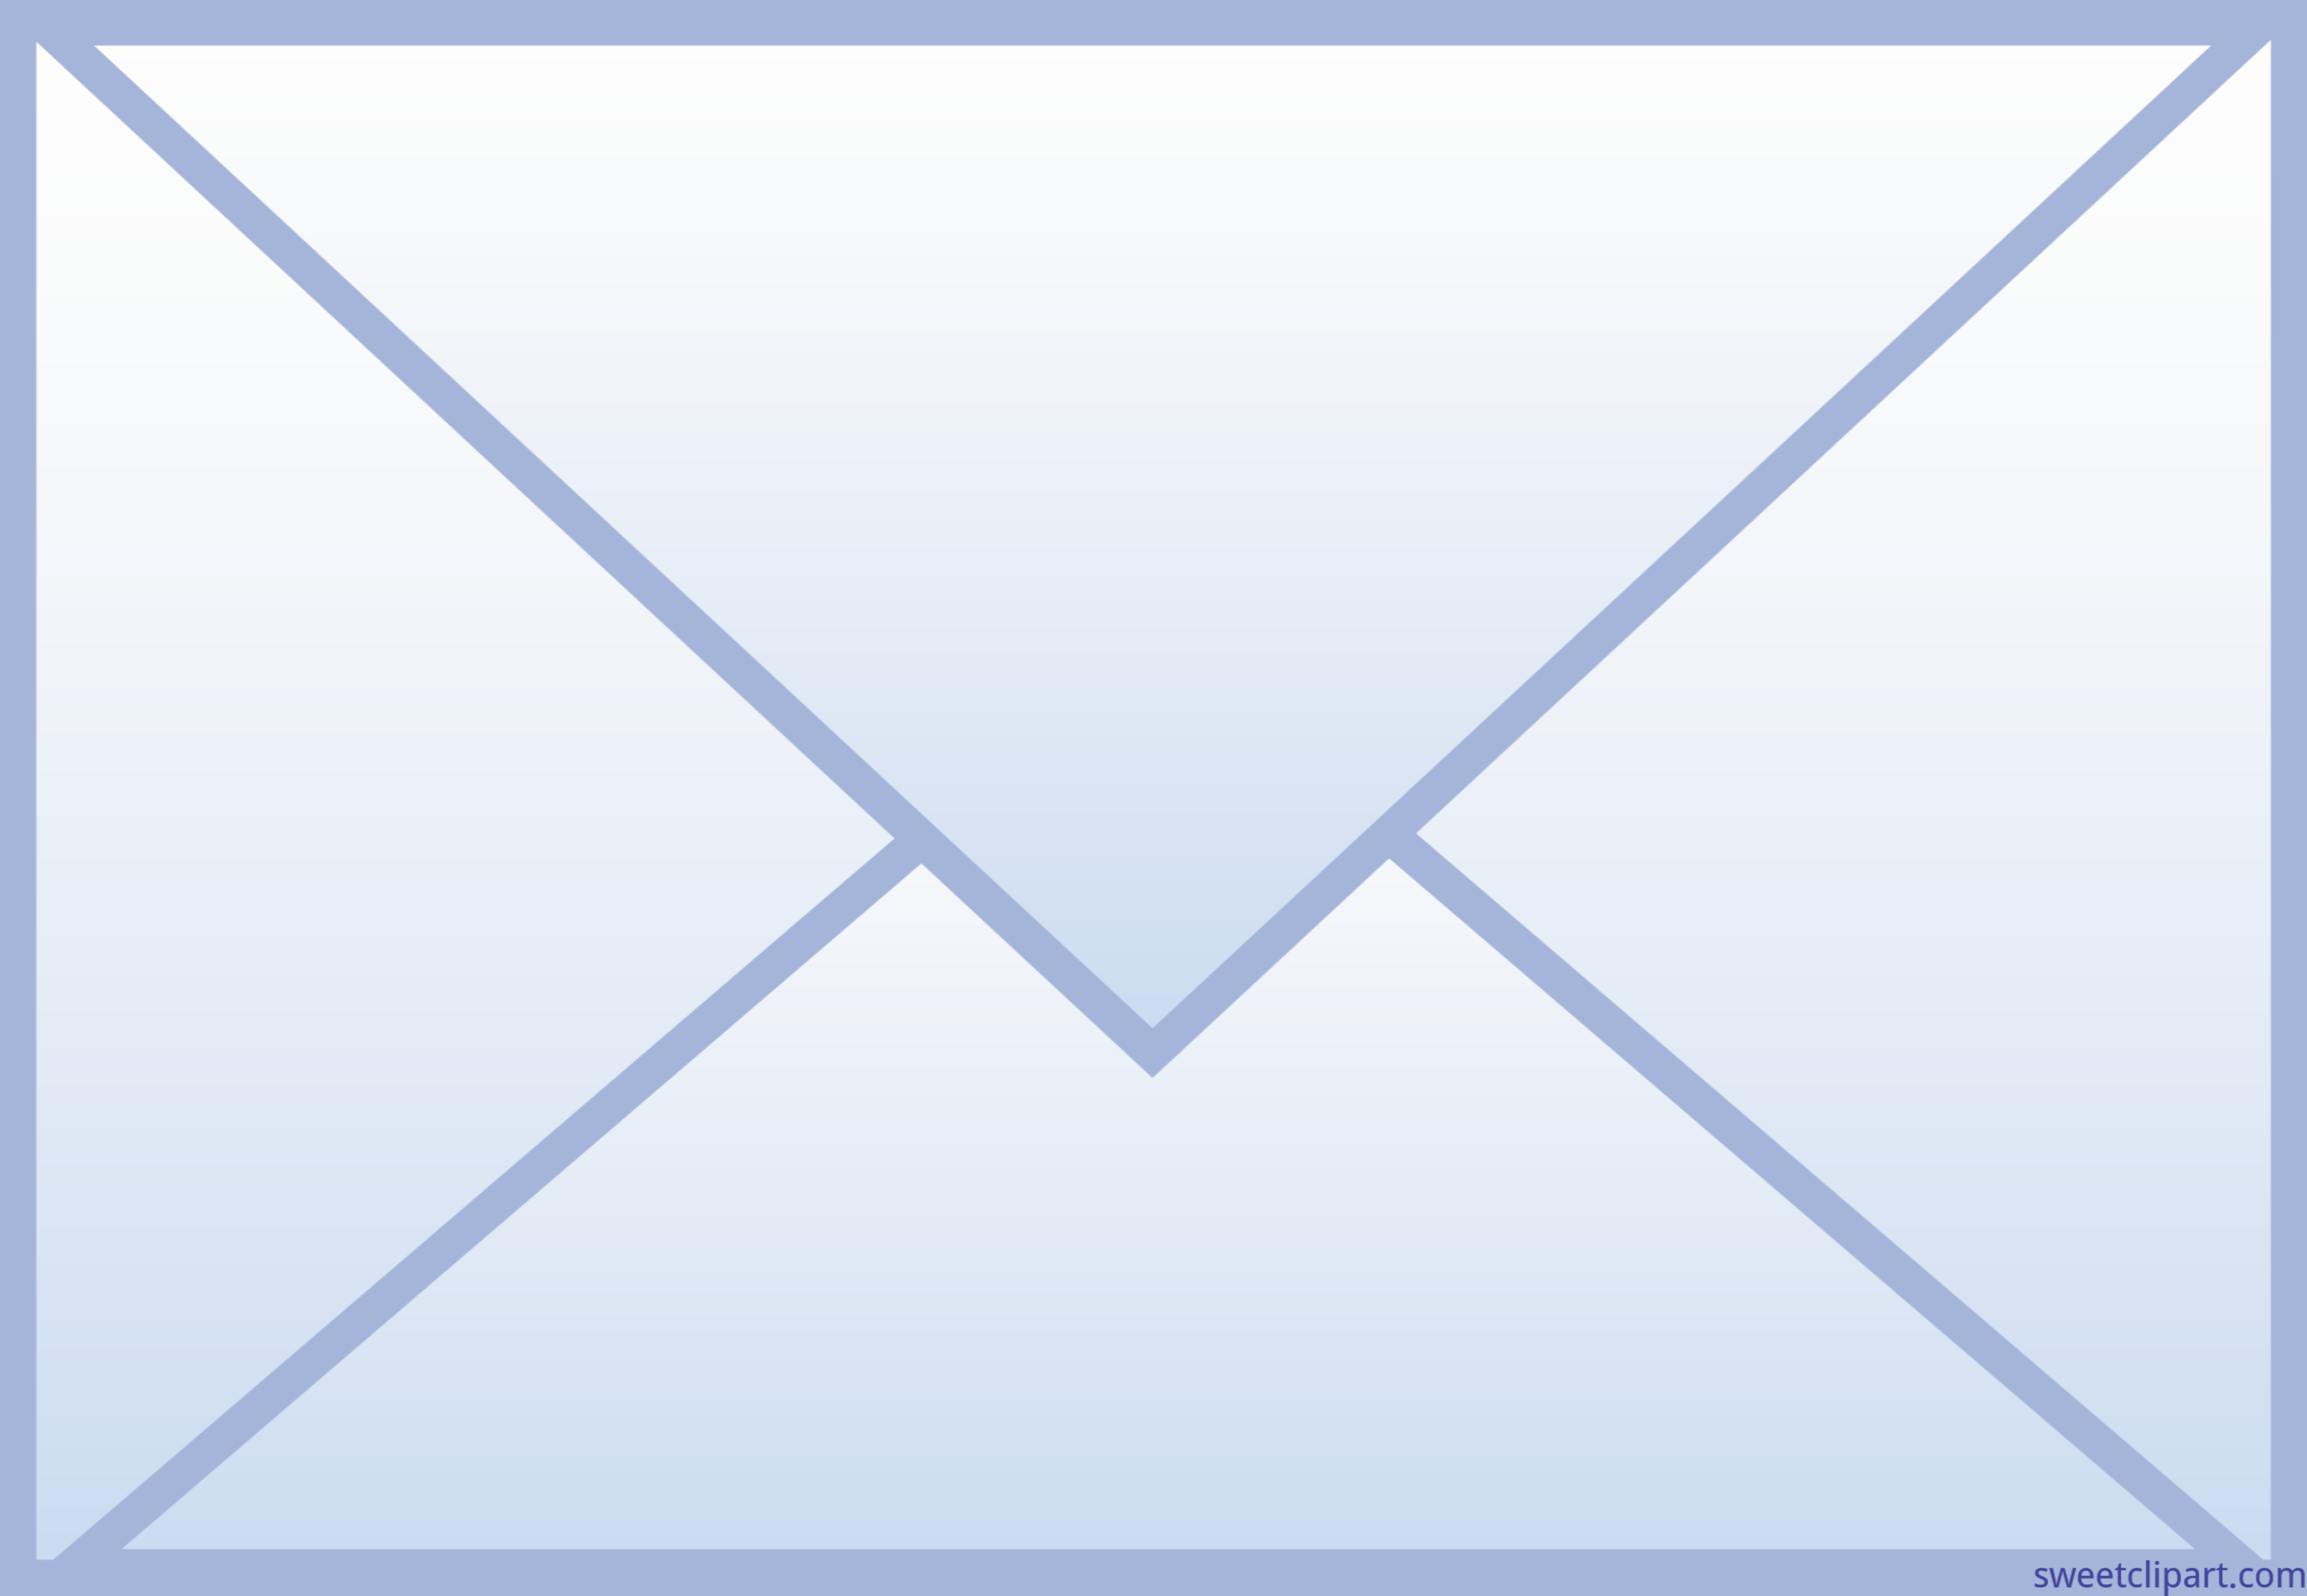 Post clipart phone email. Mail envelope blue icon